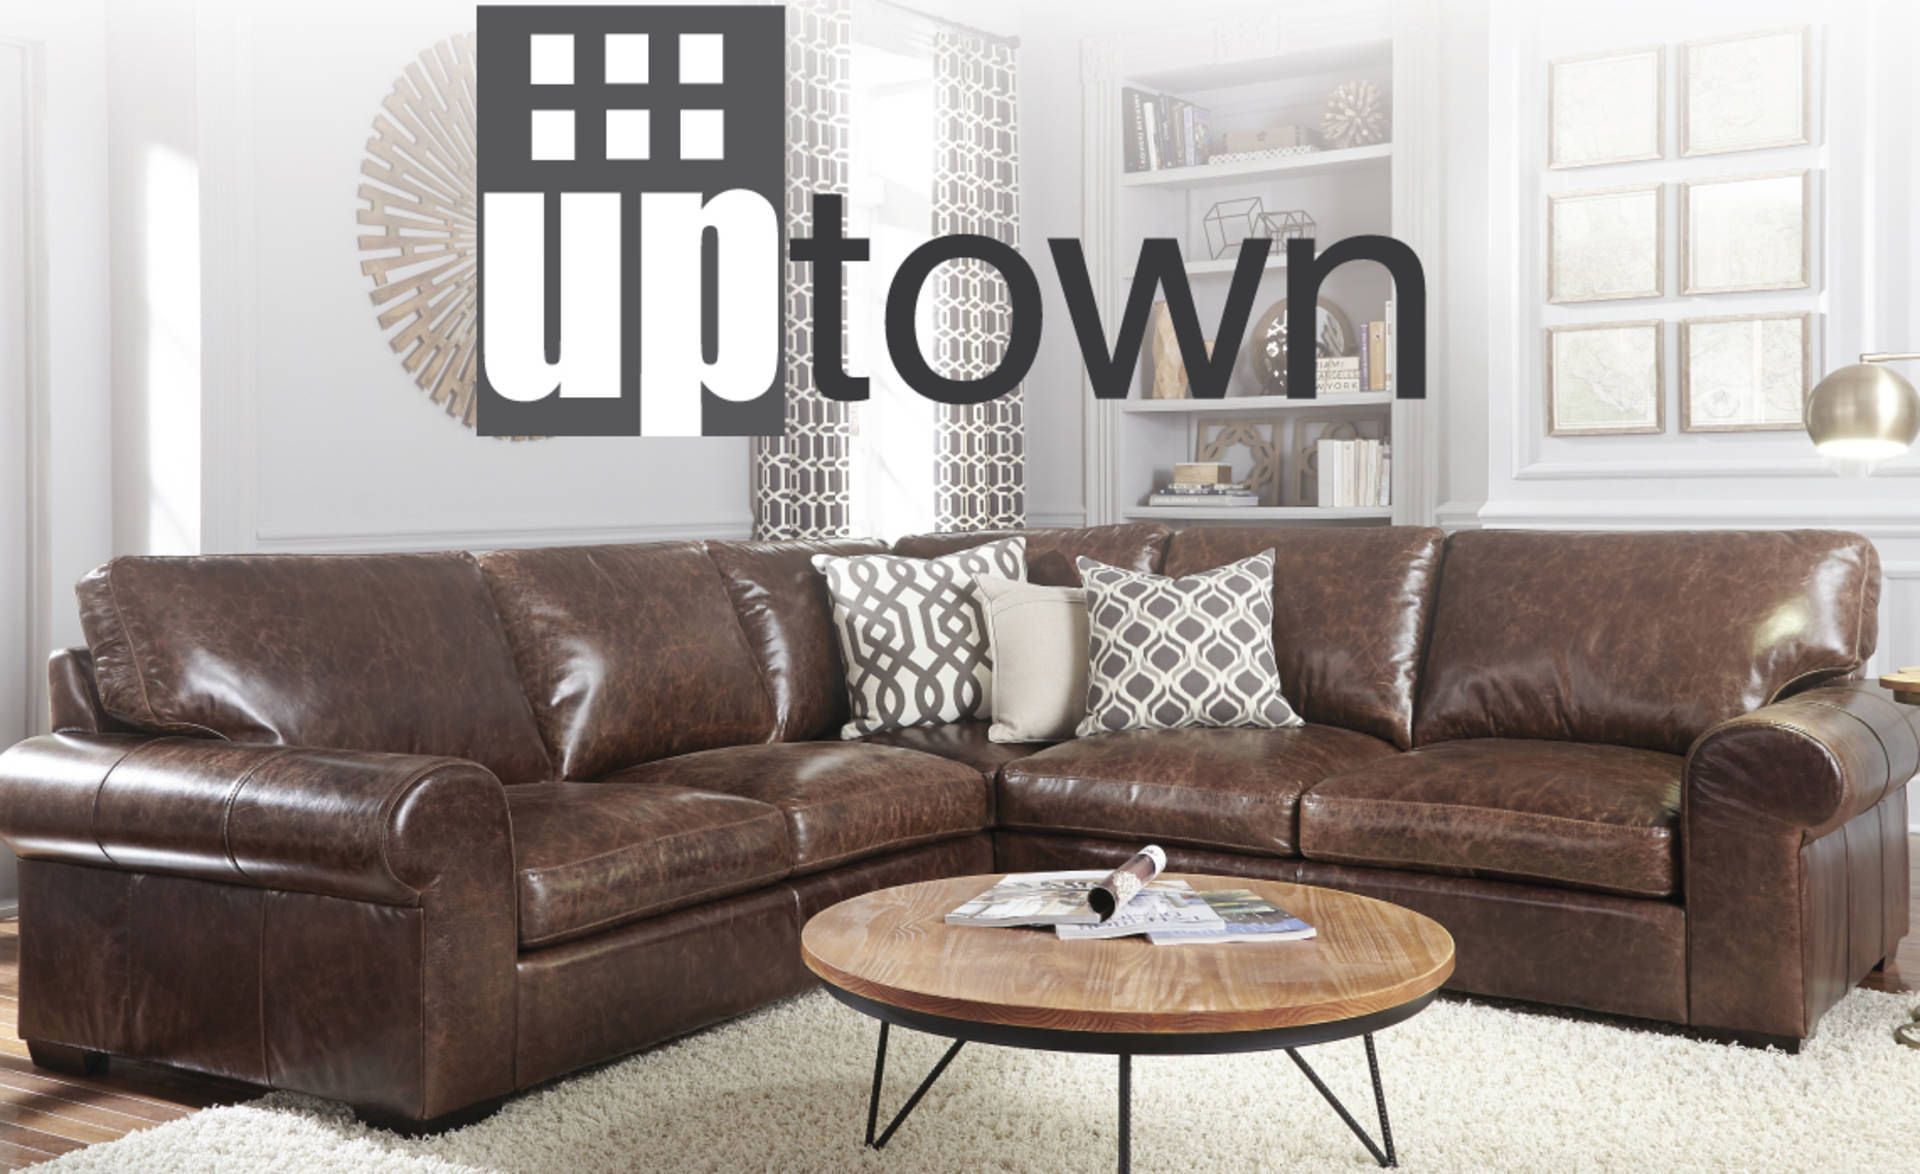 Hom furniture furniture stores in minneapolis minnesota for The great furniture store